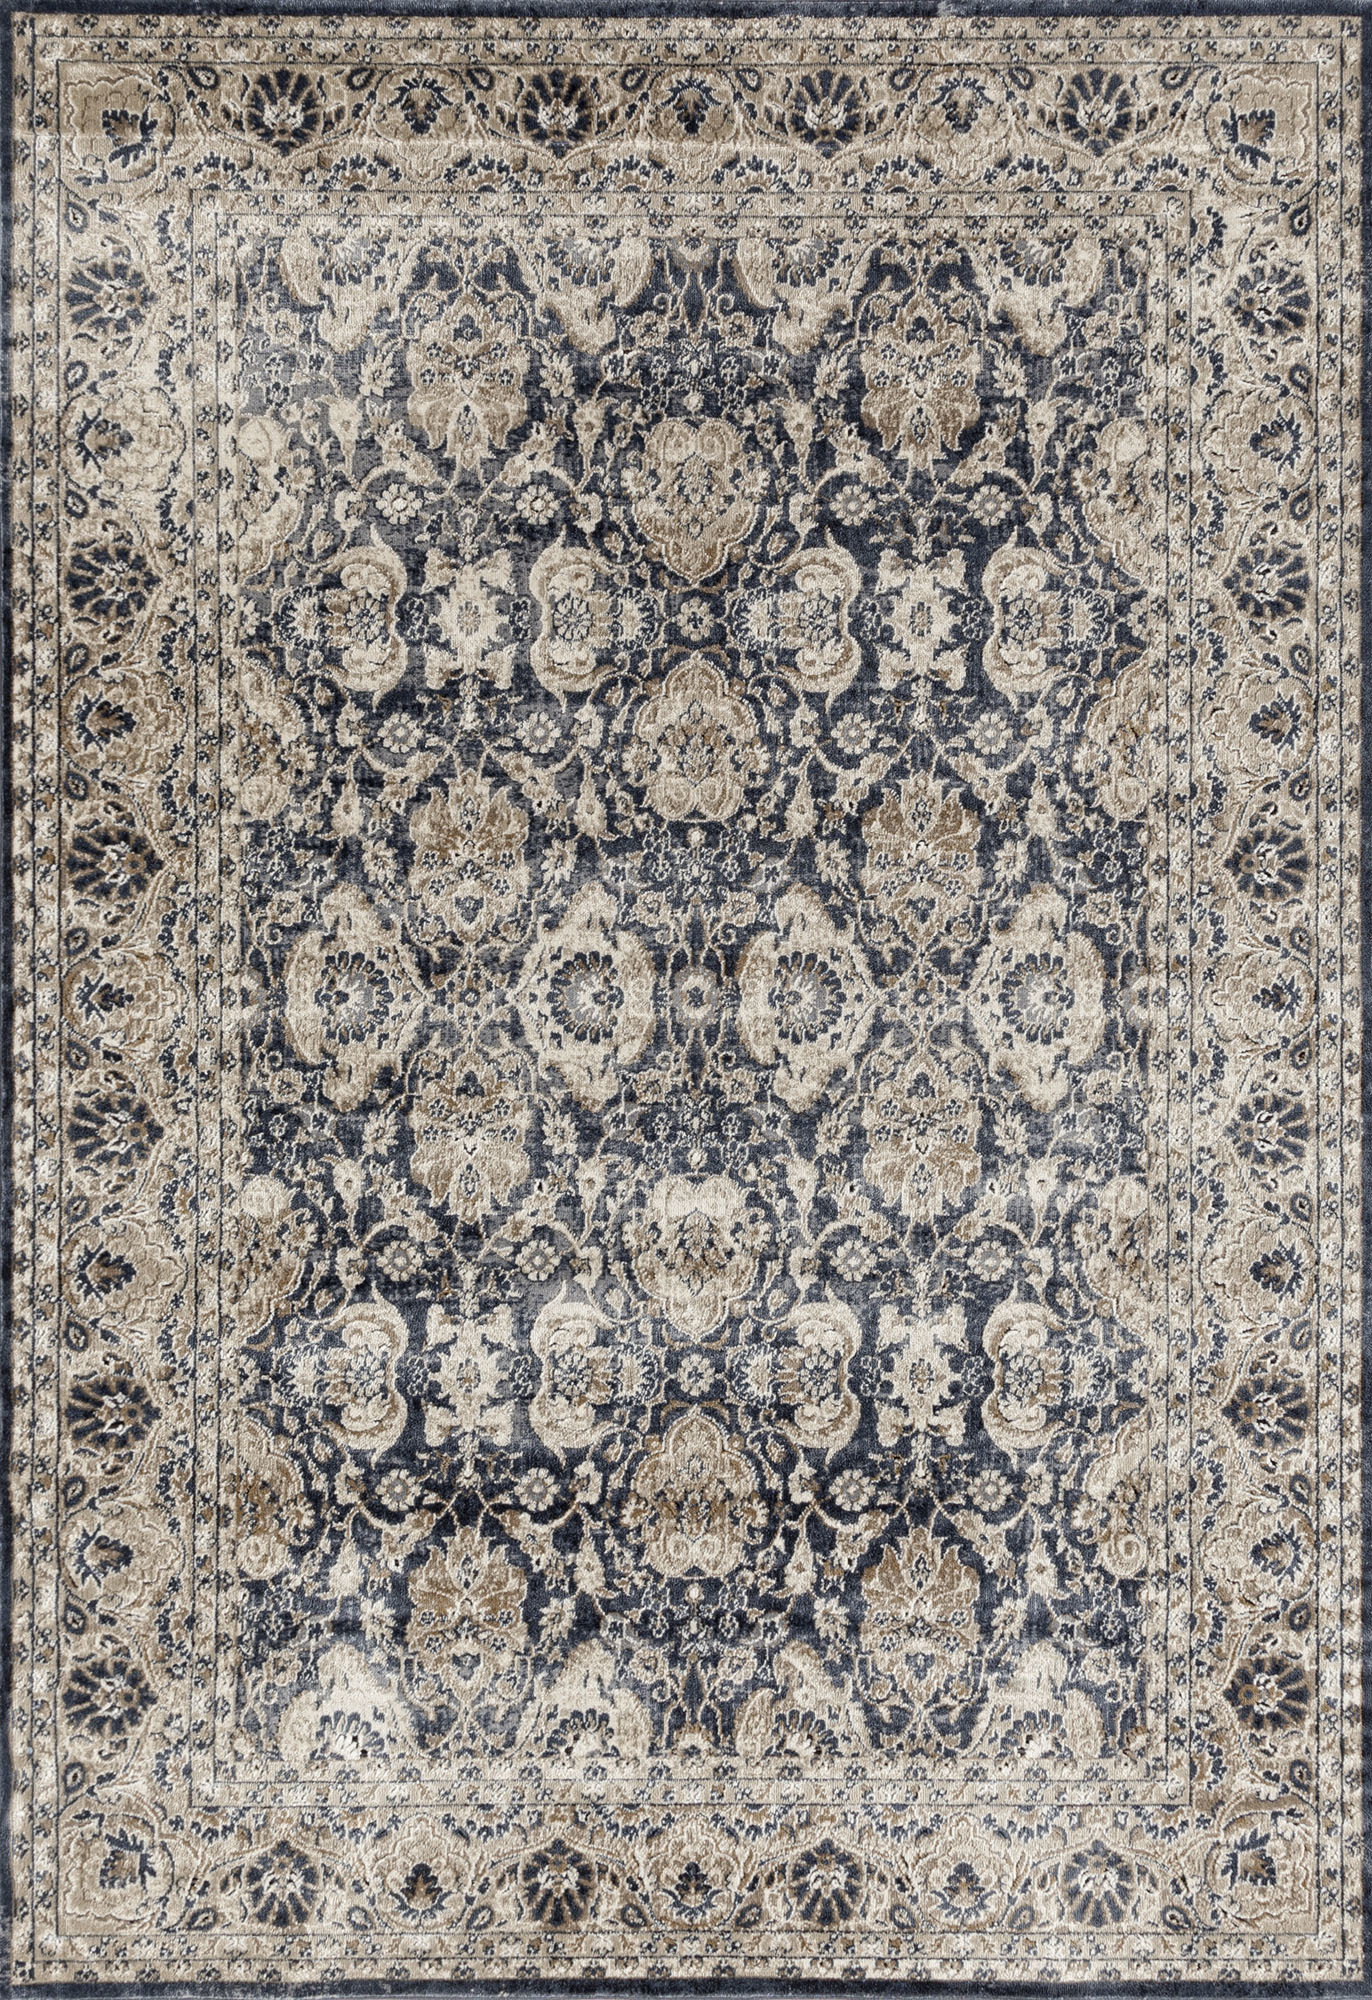 c64925adff SKU #NETW7027 Tandy Navy, Cream & Beige Chenille Cotton Modern Rug is also  sometimes listed under the following manufacturer numbers:  PVD-835-BLU-230X160, ...